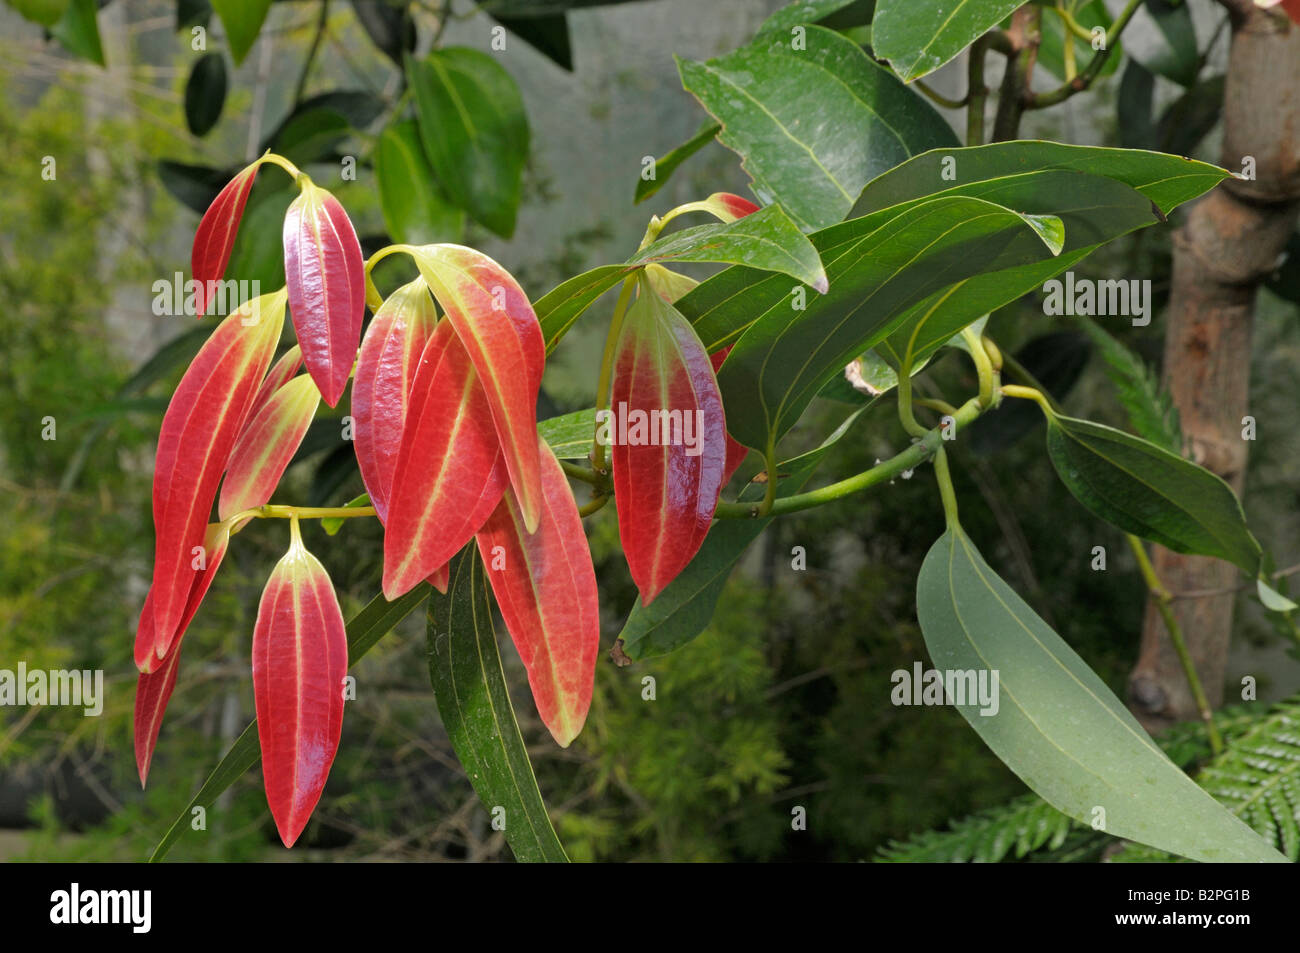 Cassia Bark, Chinese Cinnamon (Cinnamomum aromaticum) twig with red leaves - Stock Image